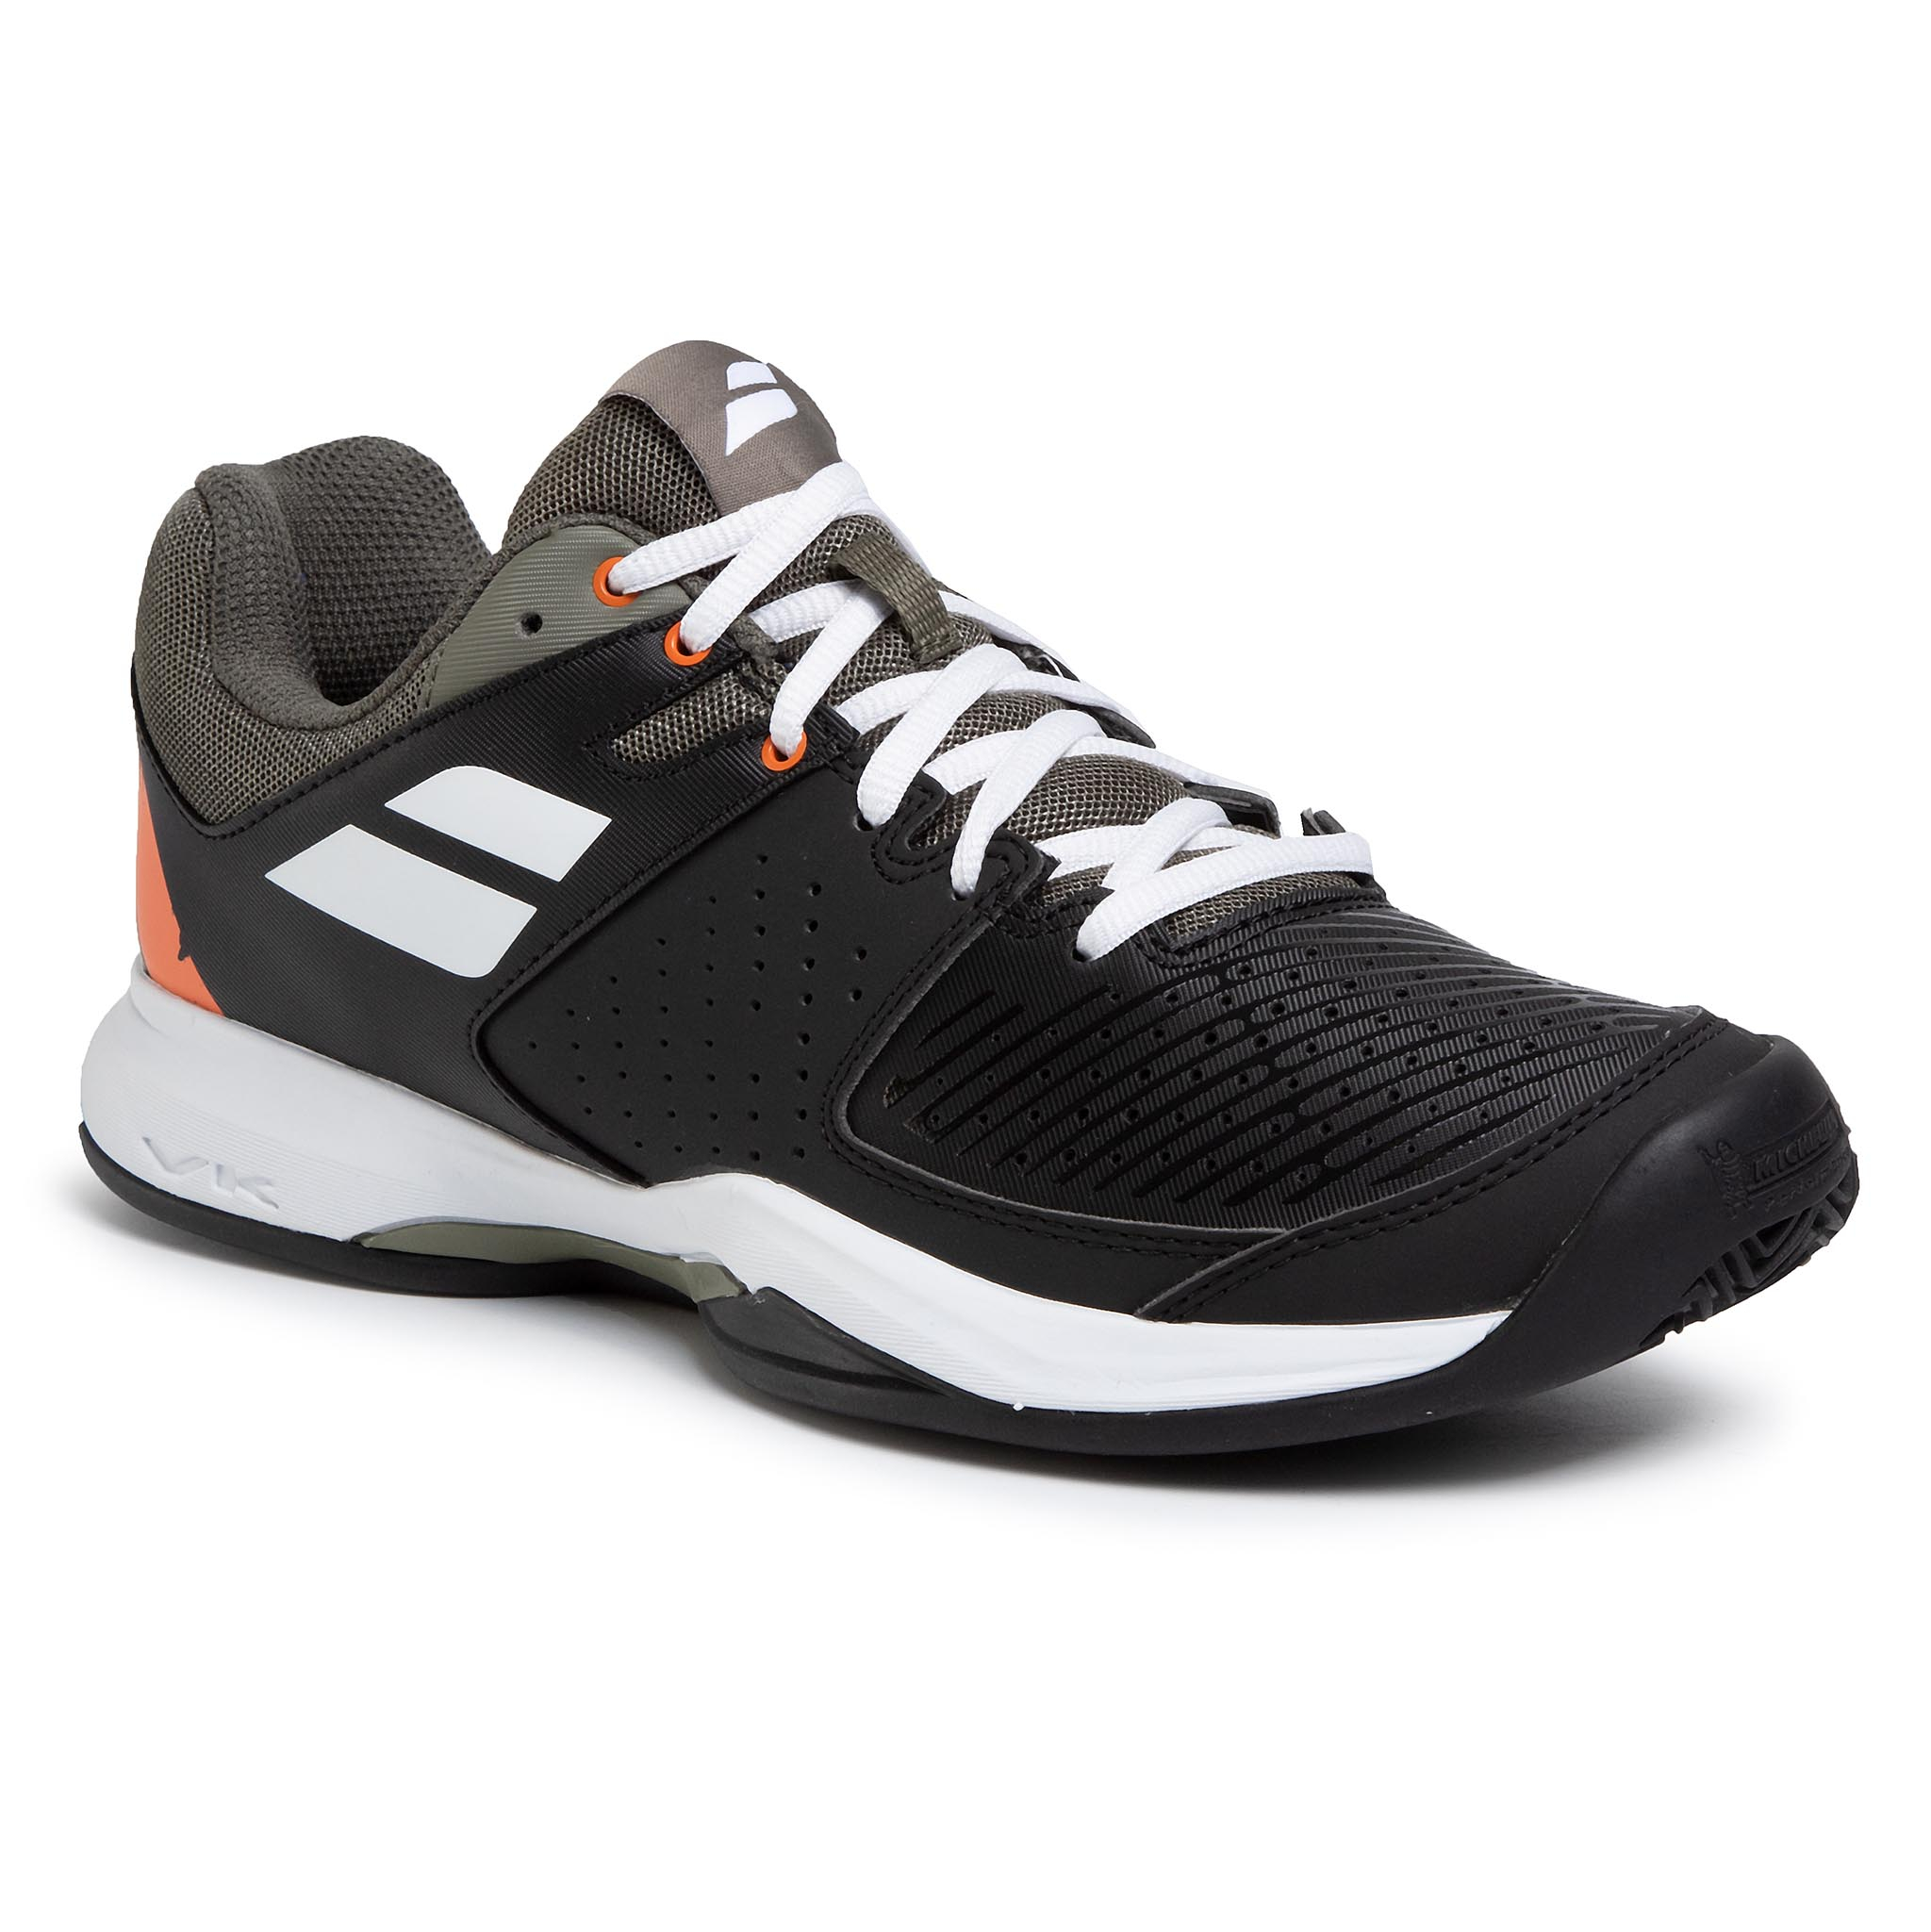 Pantofi Babolat - Pulsion Clay 30s20346 Black/Burnt Olive imagine epantofi.ro 2021